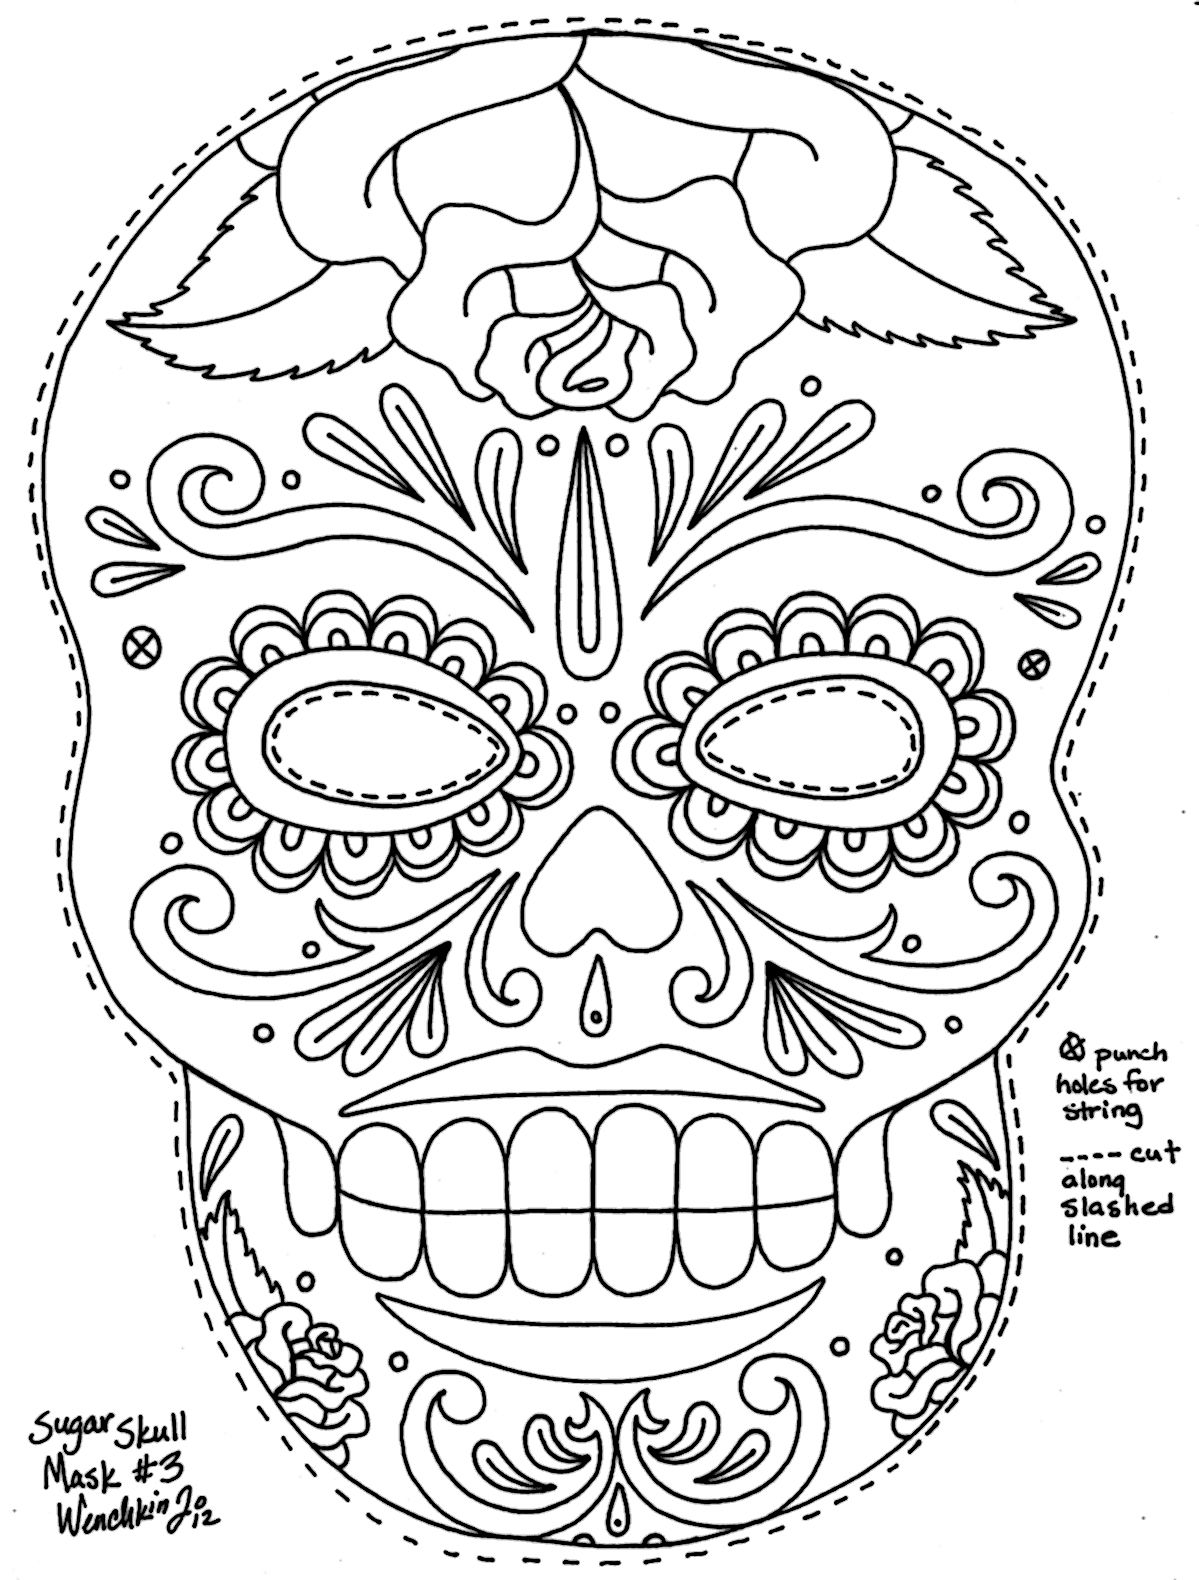 a great sugar skull mask template fun to color fun to wear